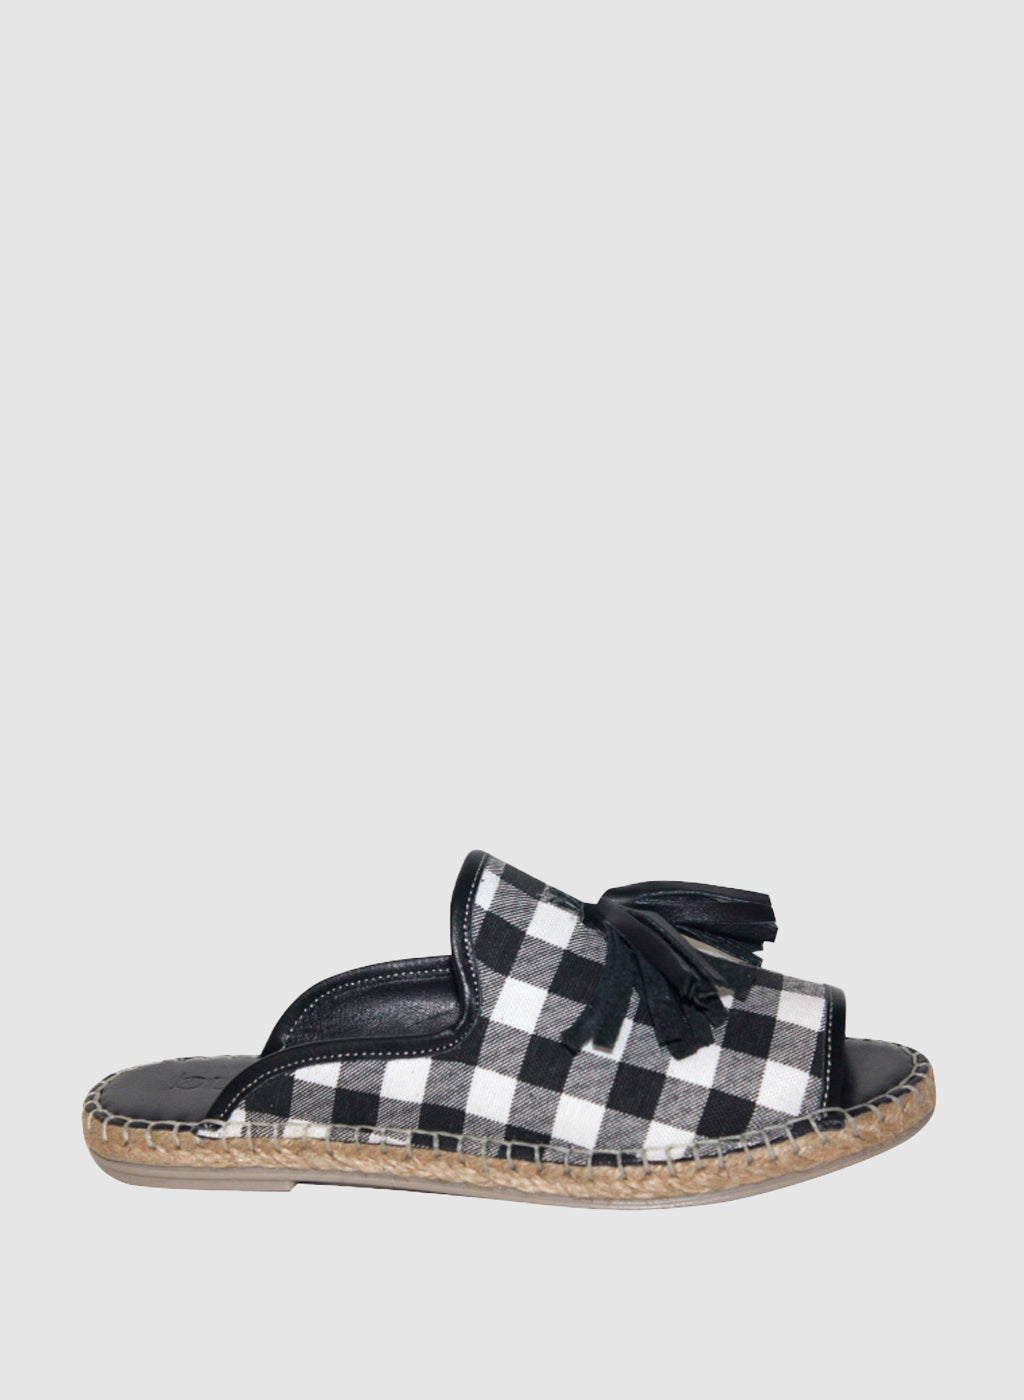 Kind Slide in Black Gingham